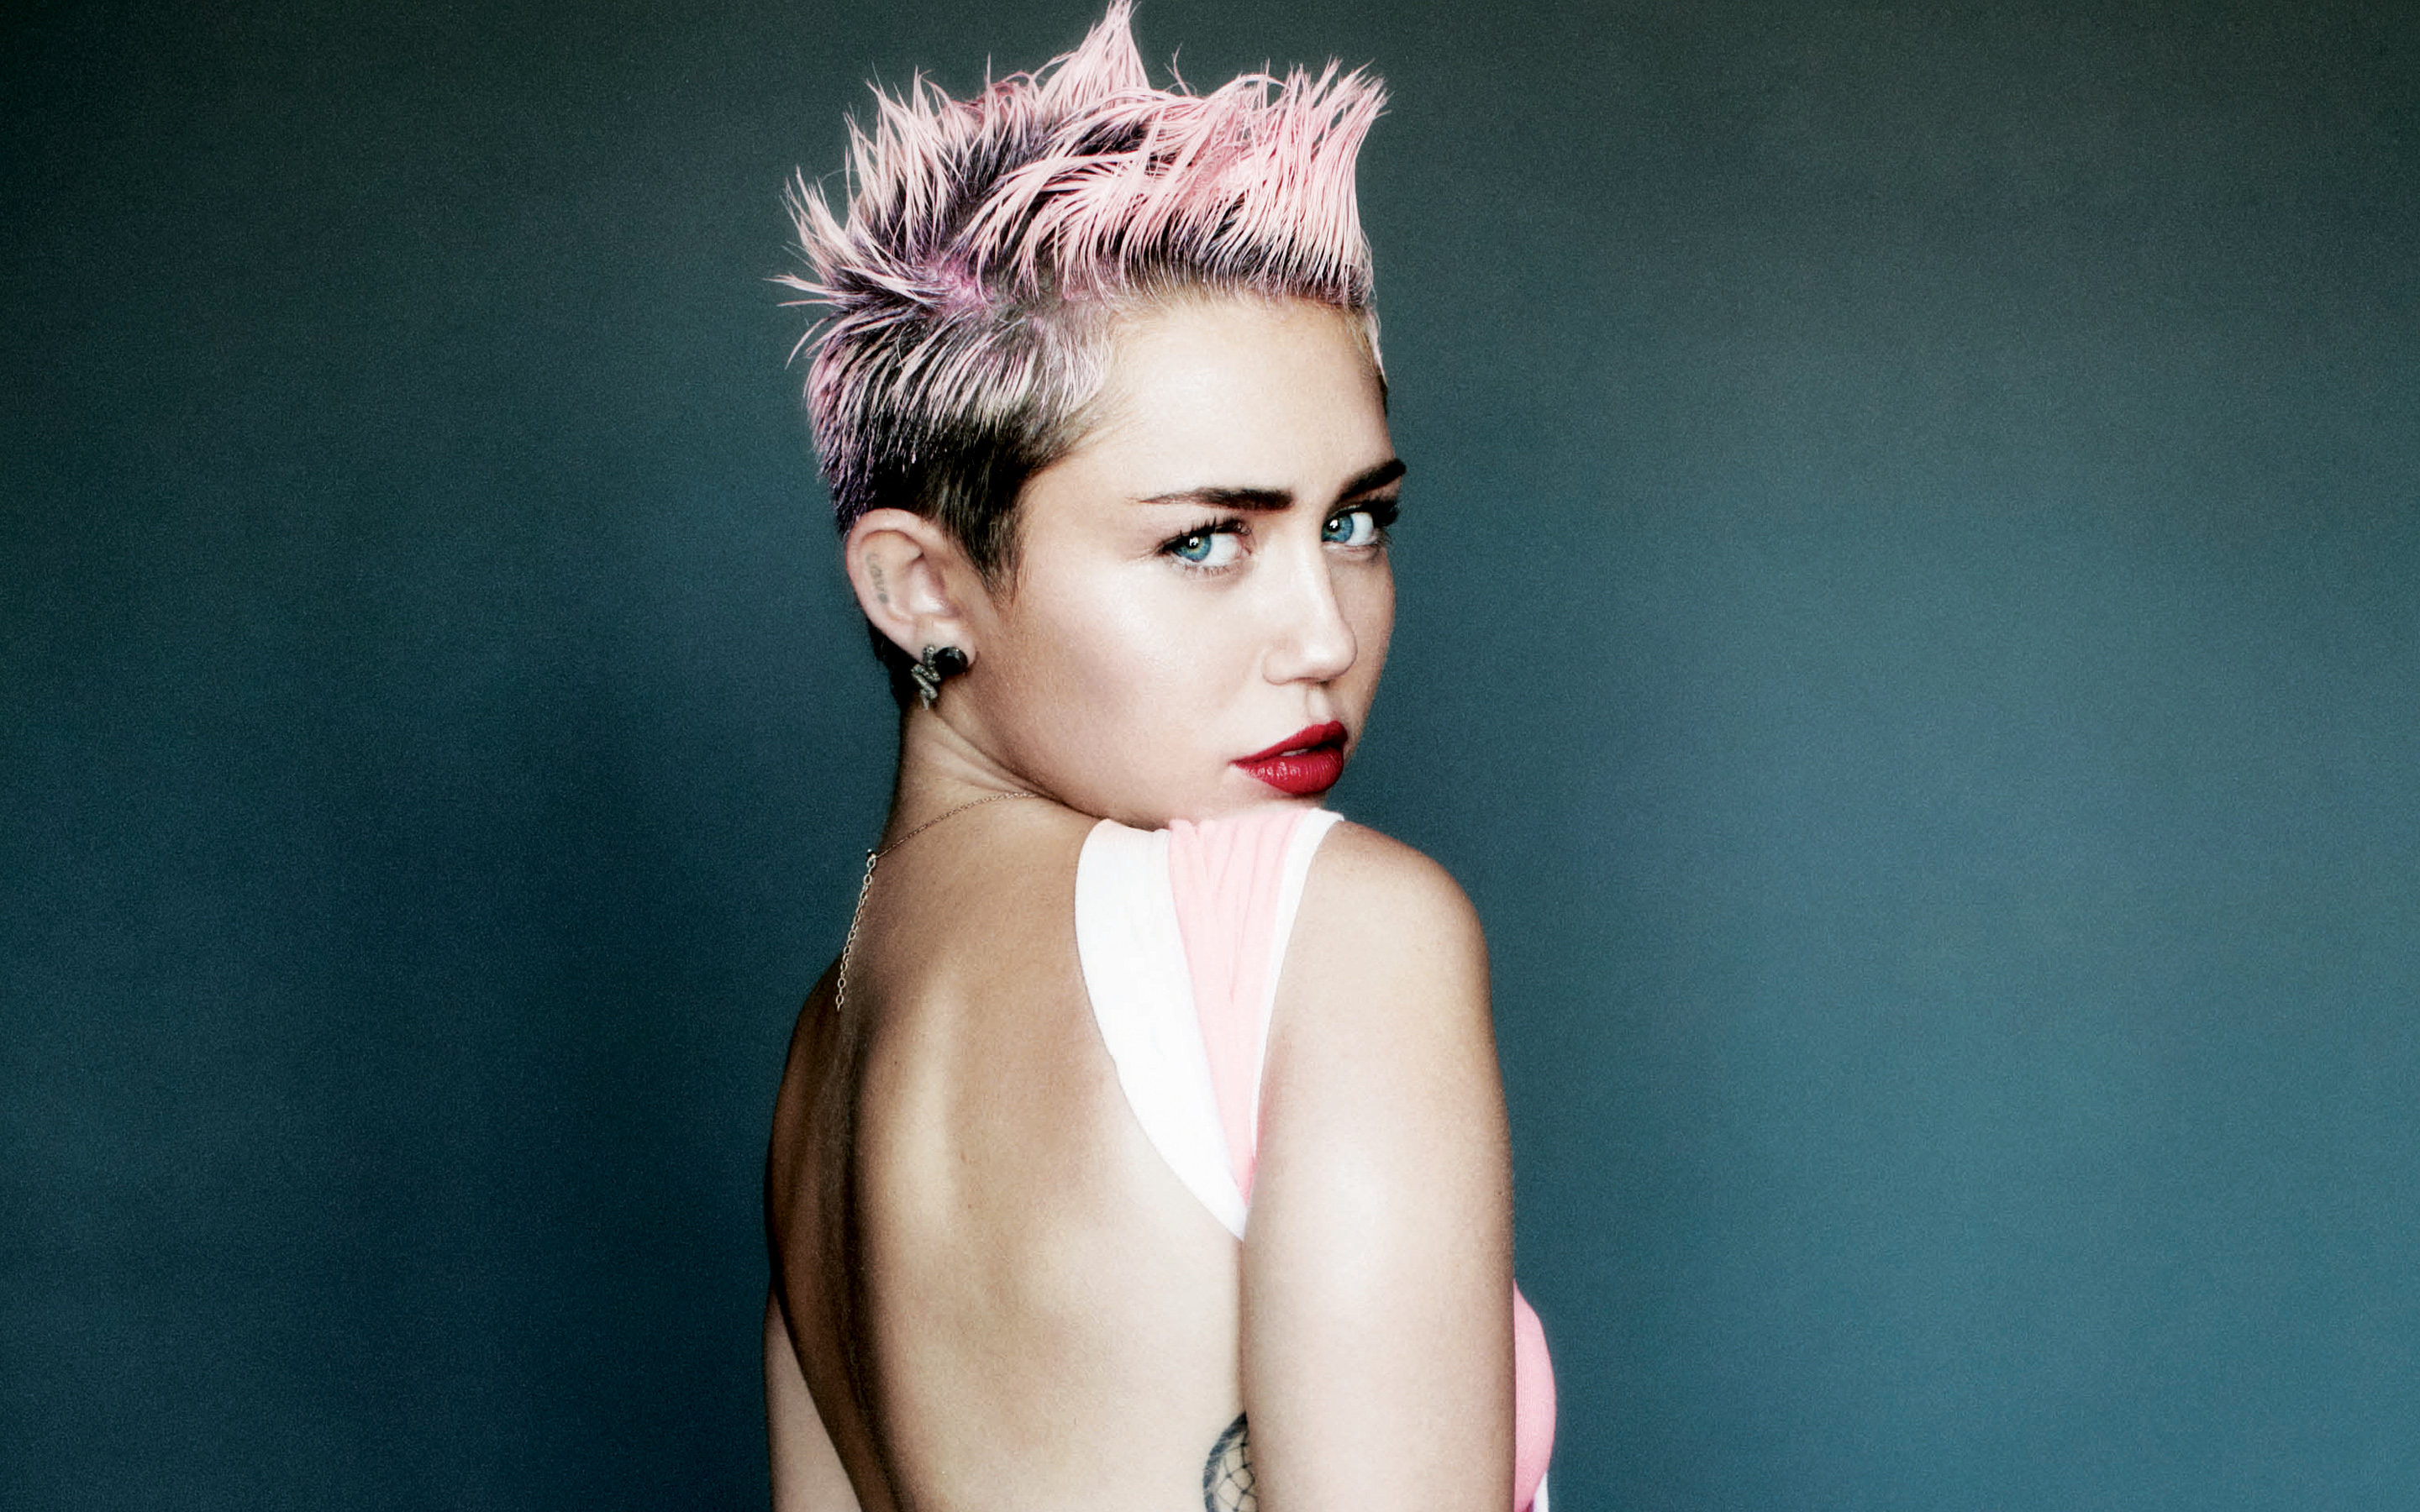 Miley Cyrus for V Magazine Wallpapers HD Wallpapers 2880x1800